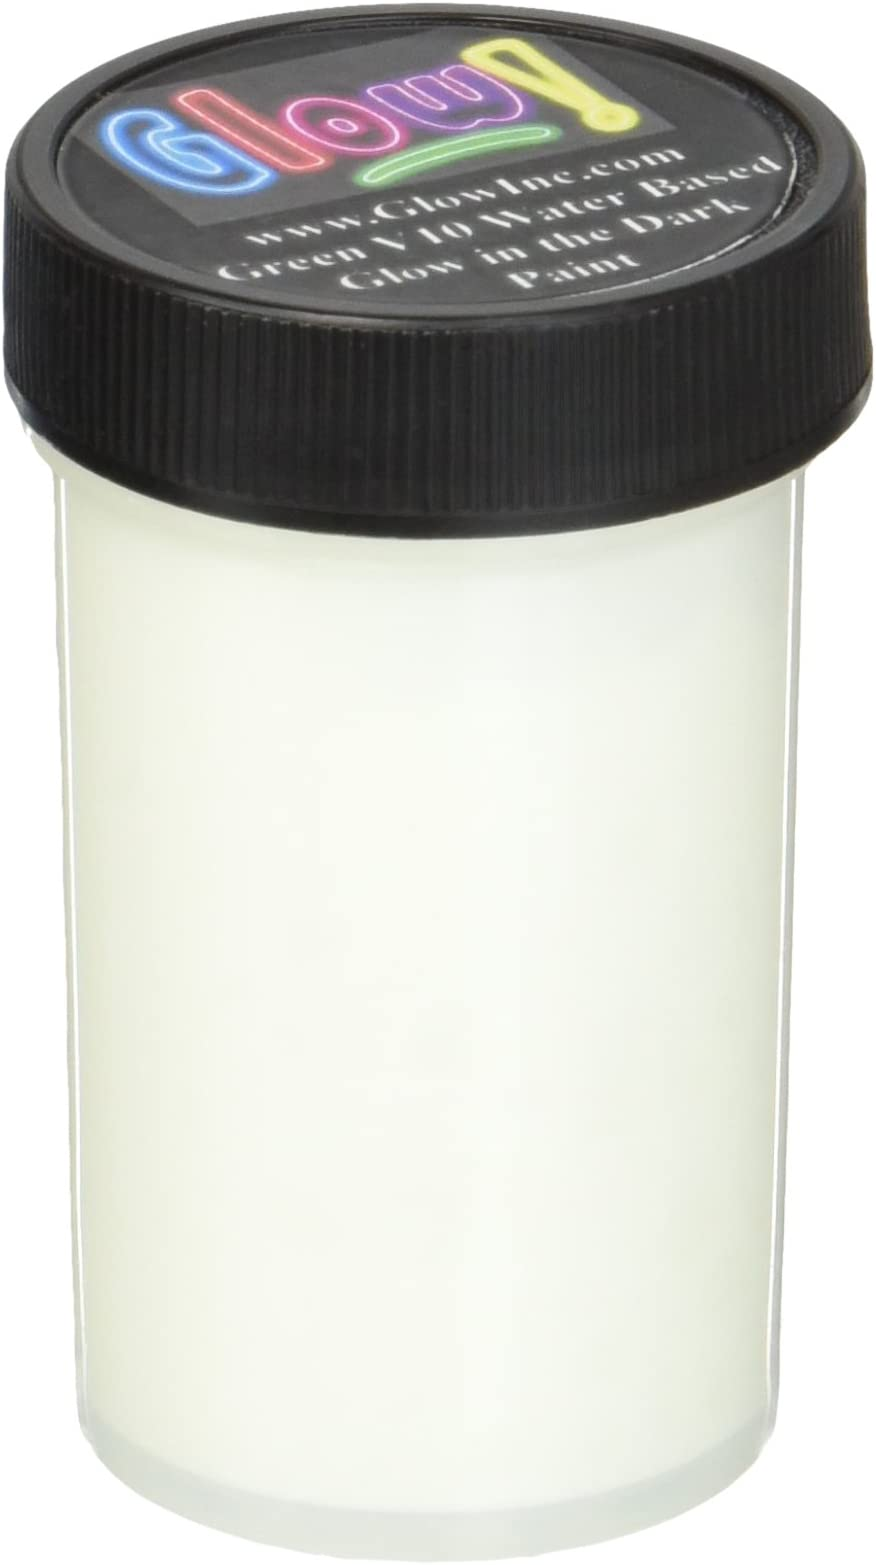 Ultra-green water based glow in the dark paint by Glow Inc 2 oz